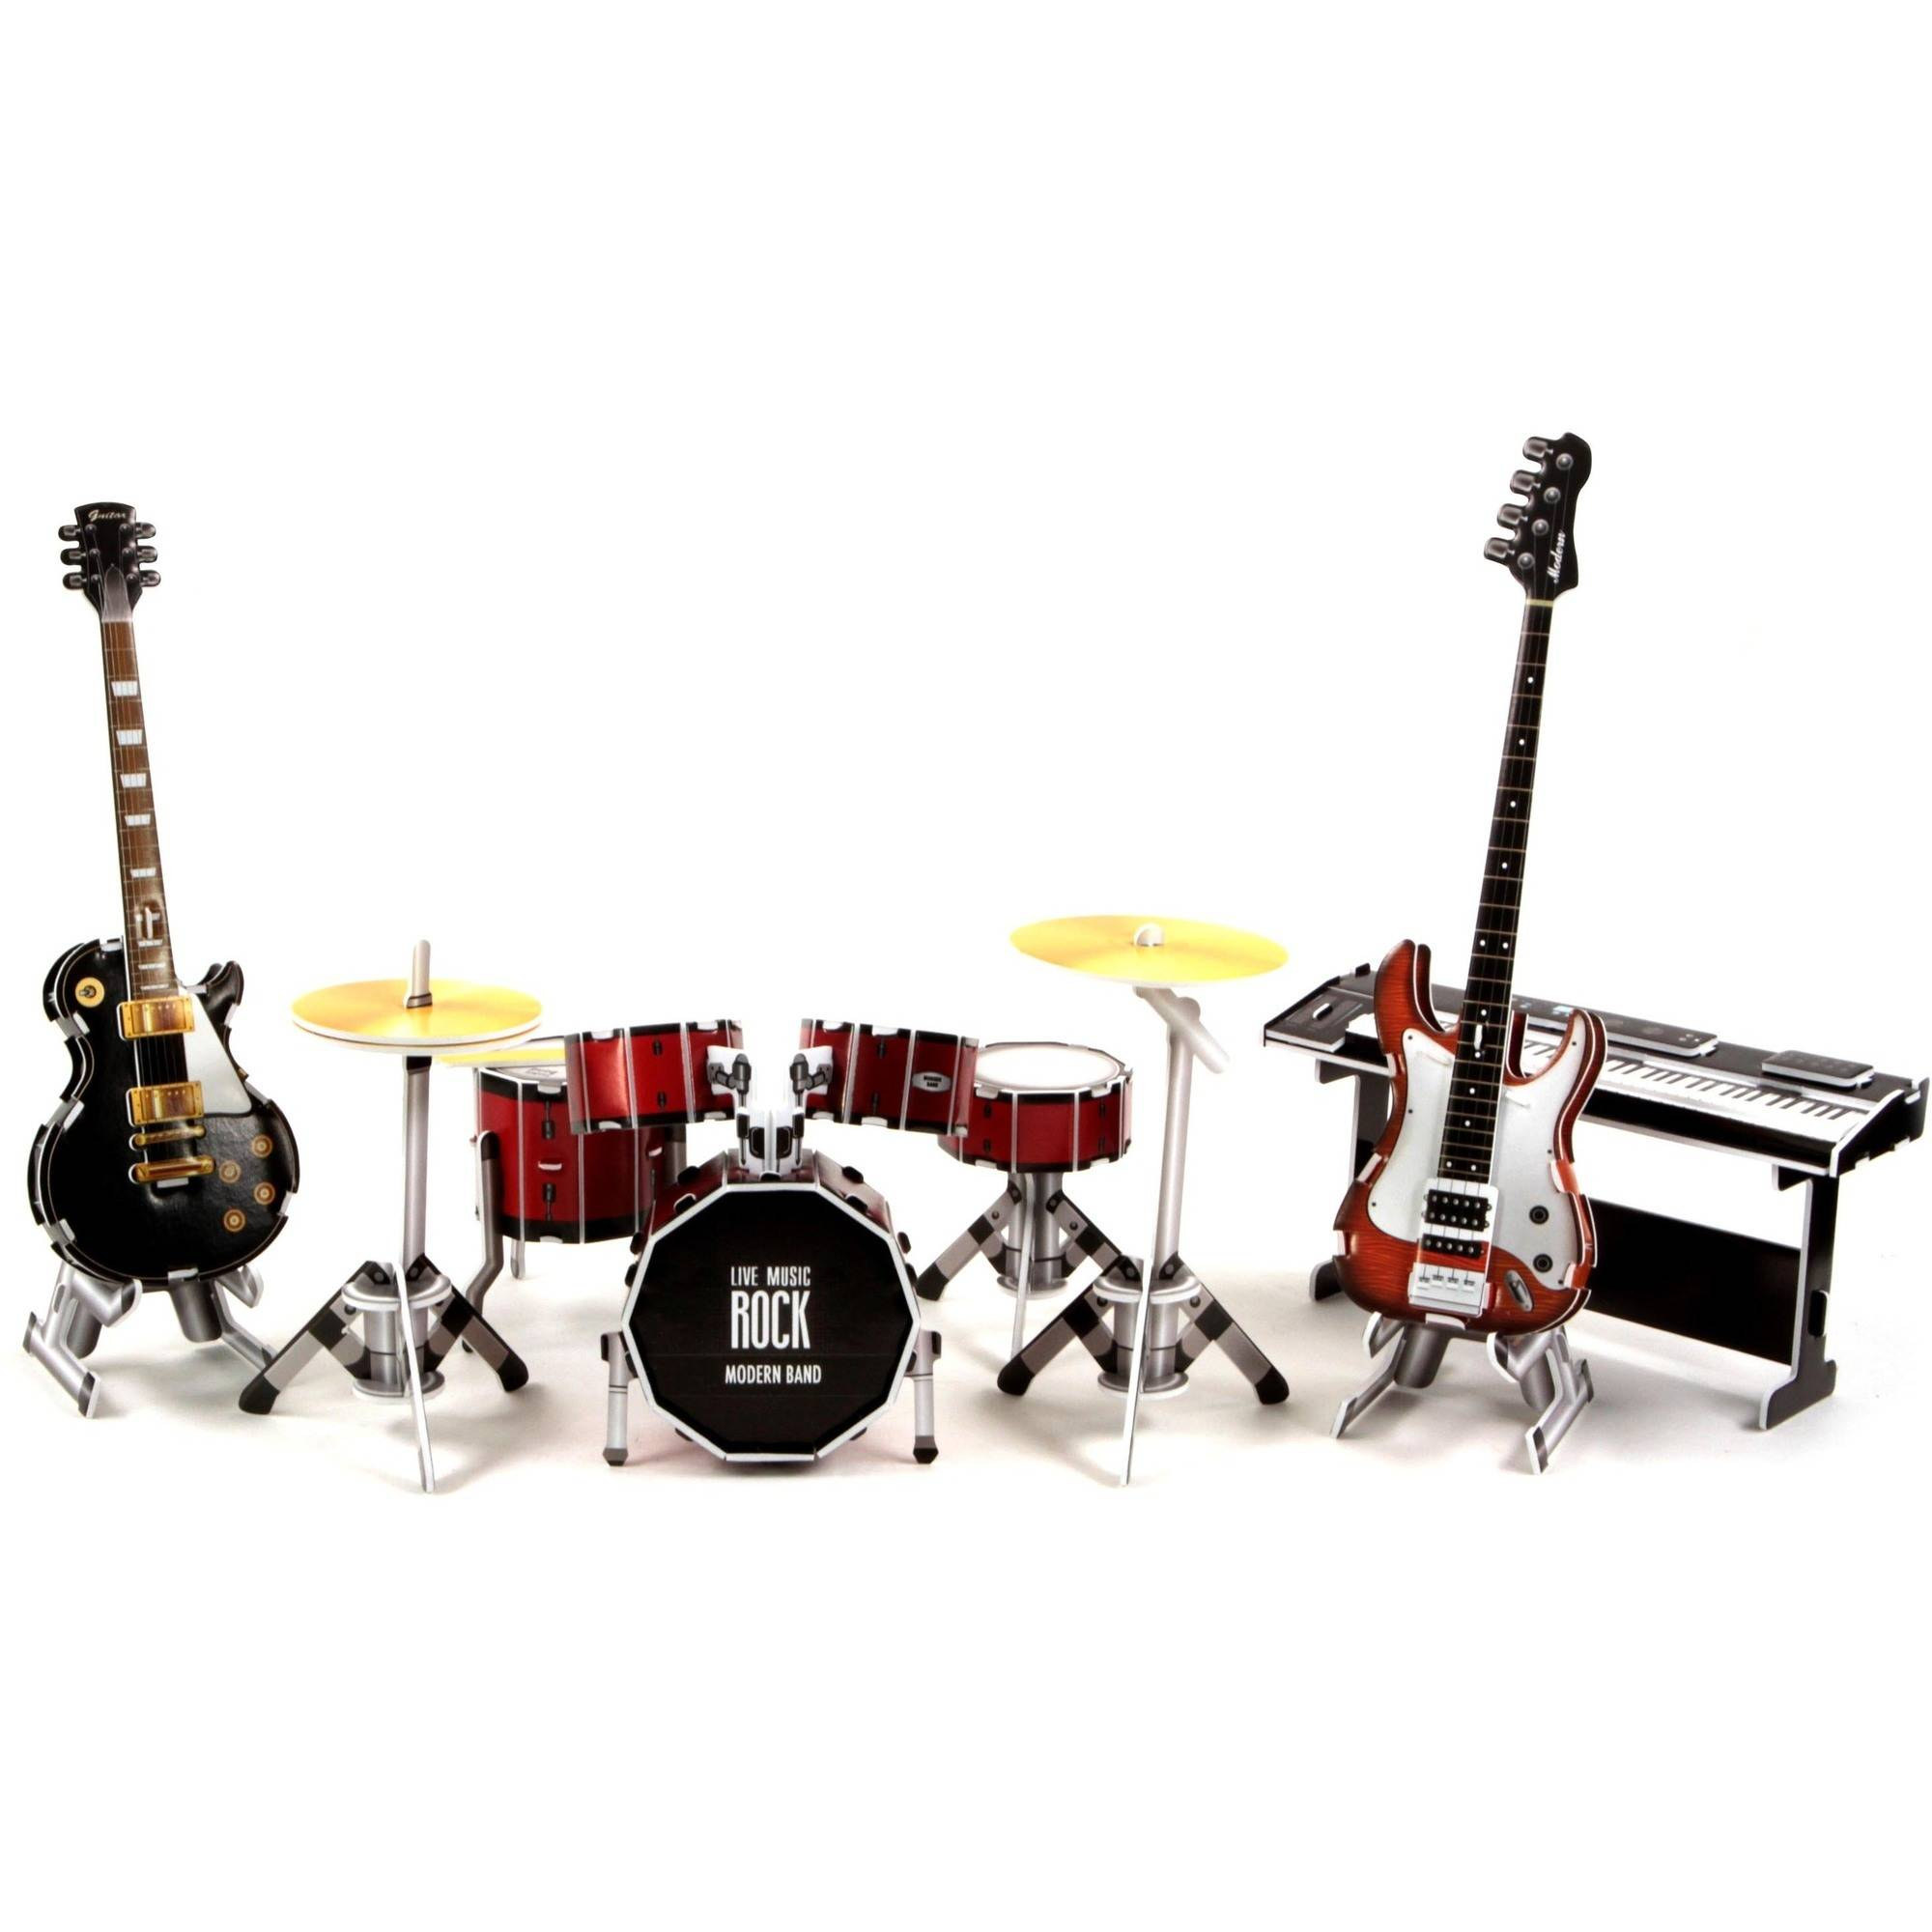 Modern Band 3D Puzzle, 66-Pieces by 3D Innovation